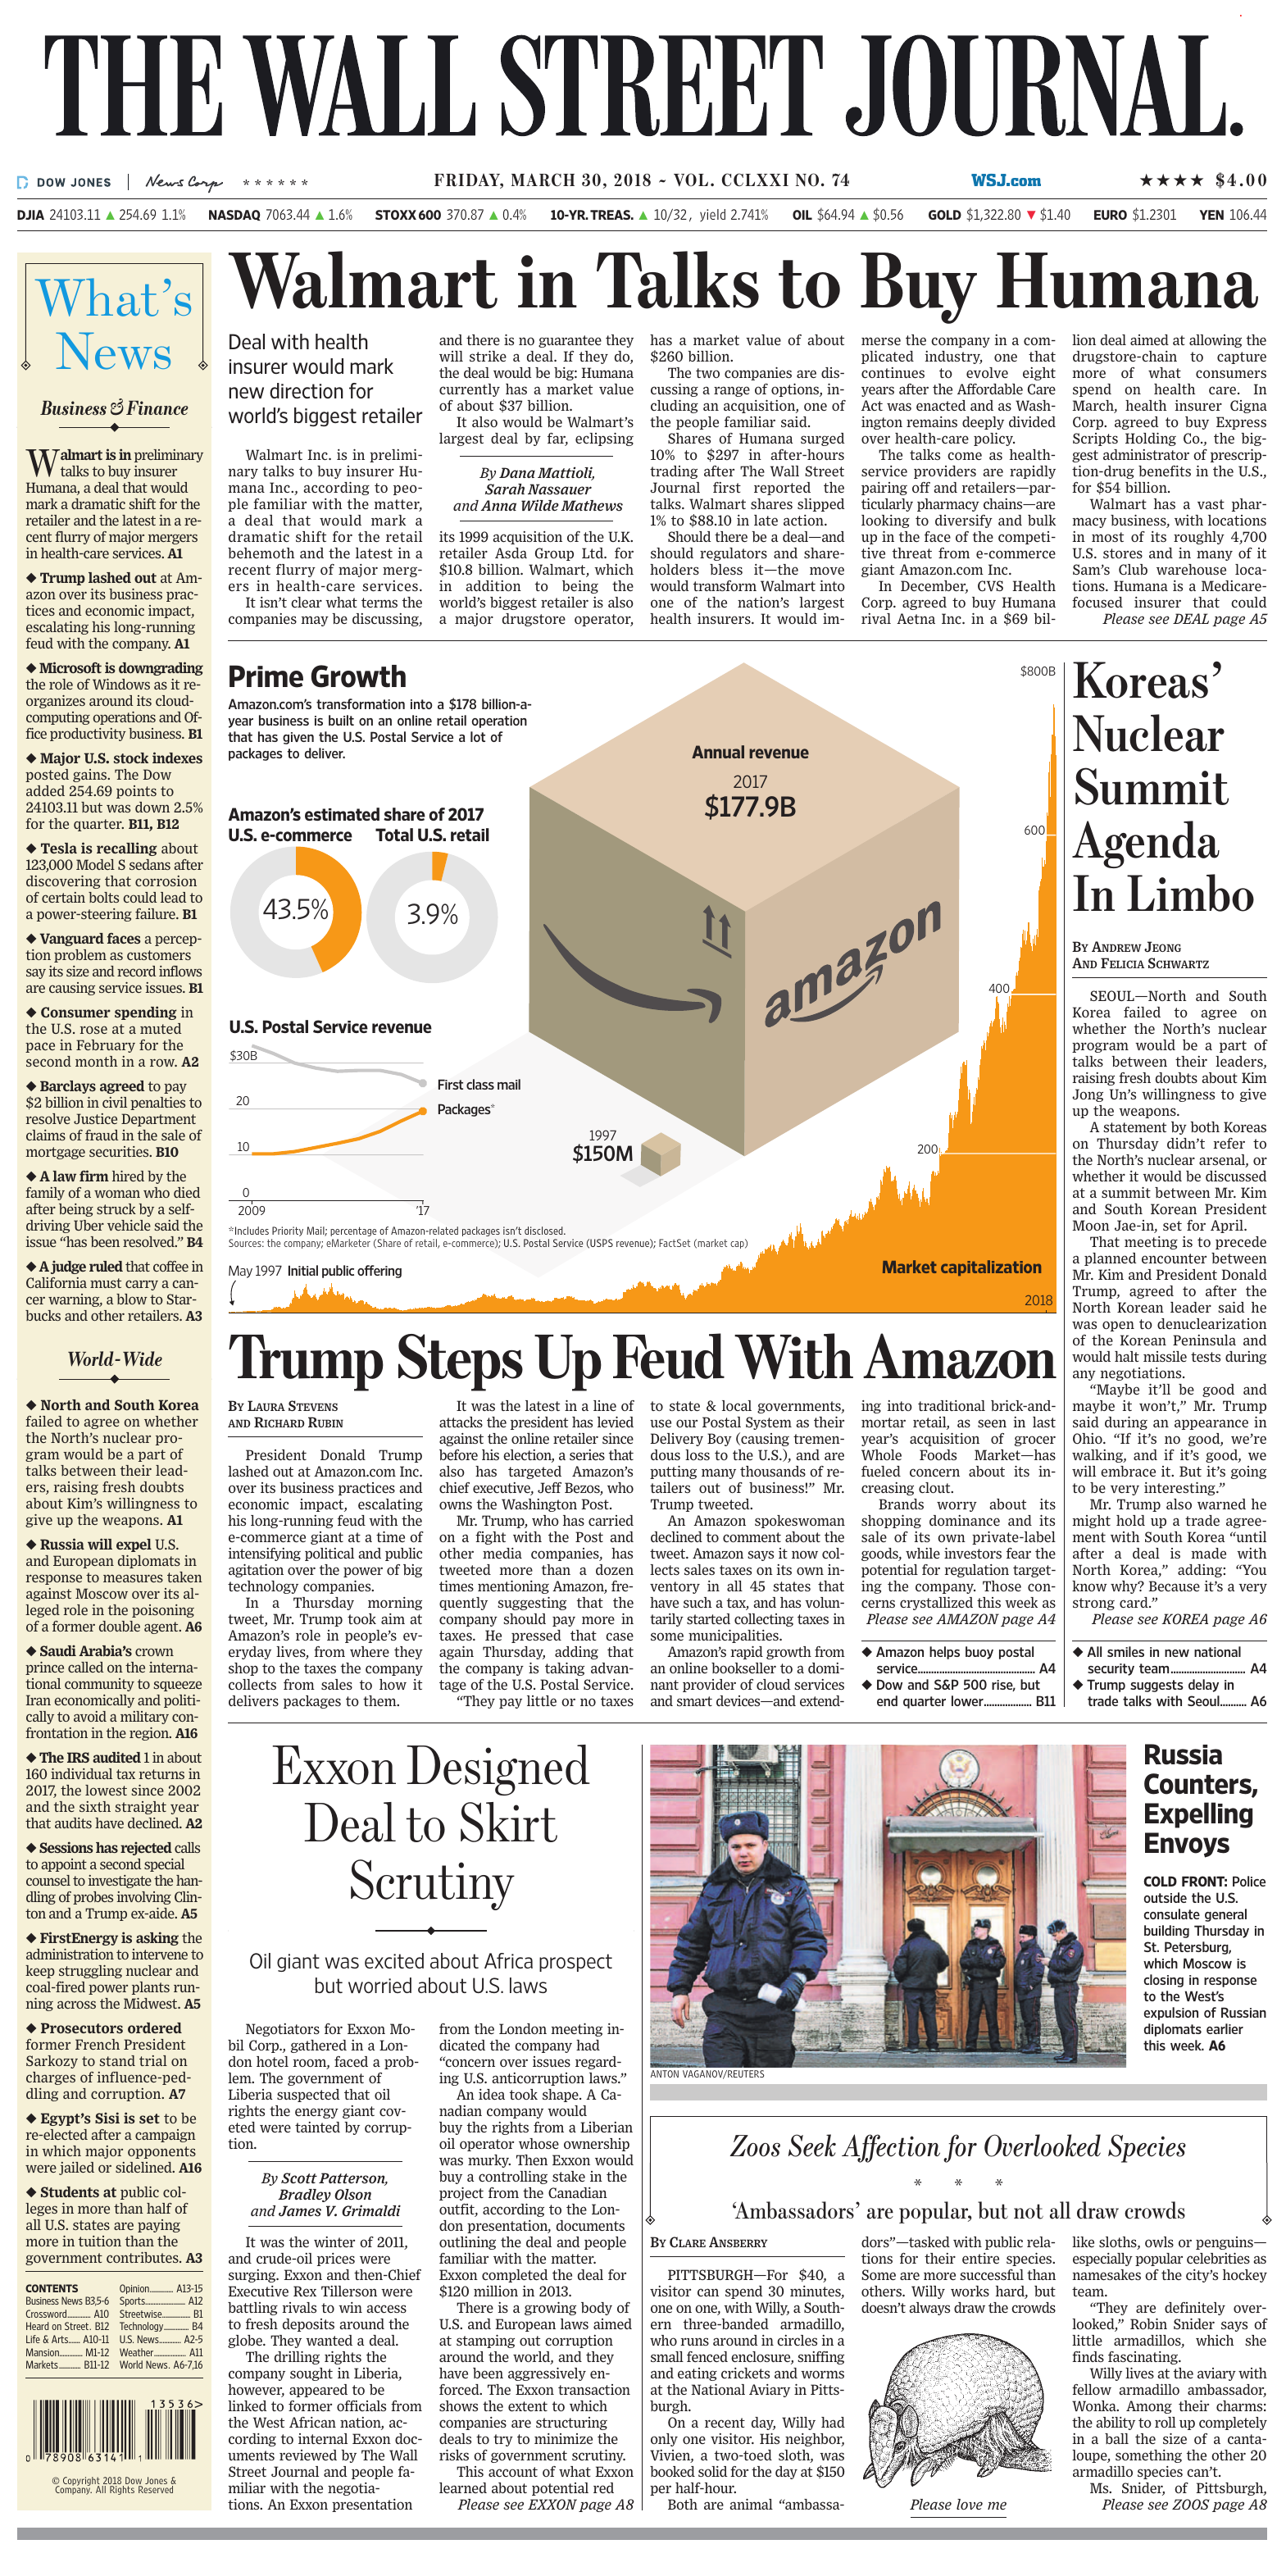 The Wall Street Journal - March 30, 2018